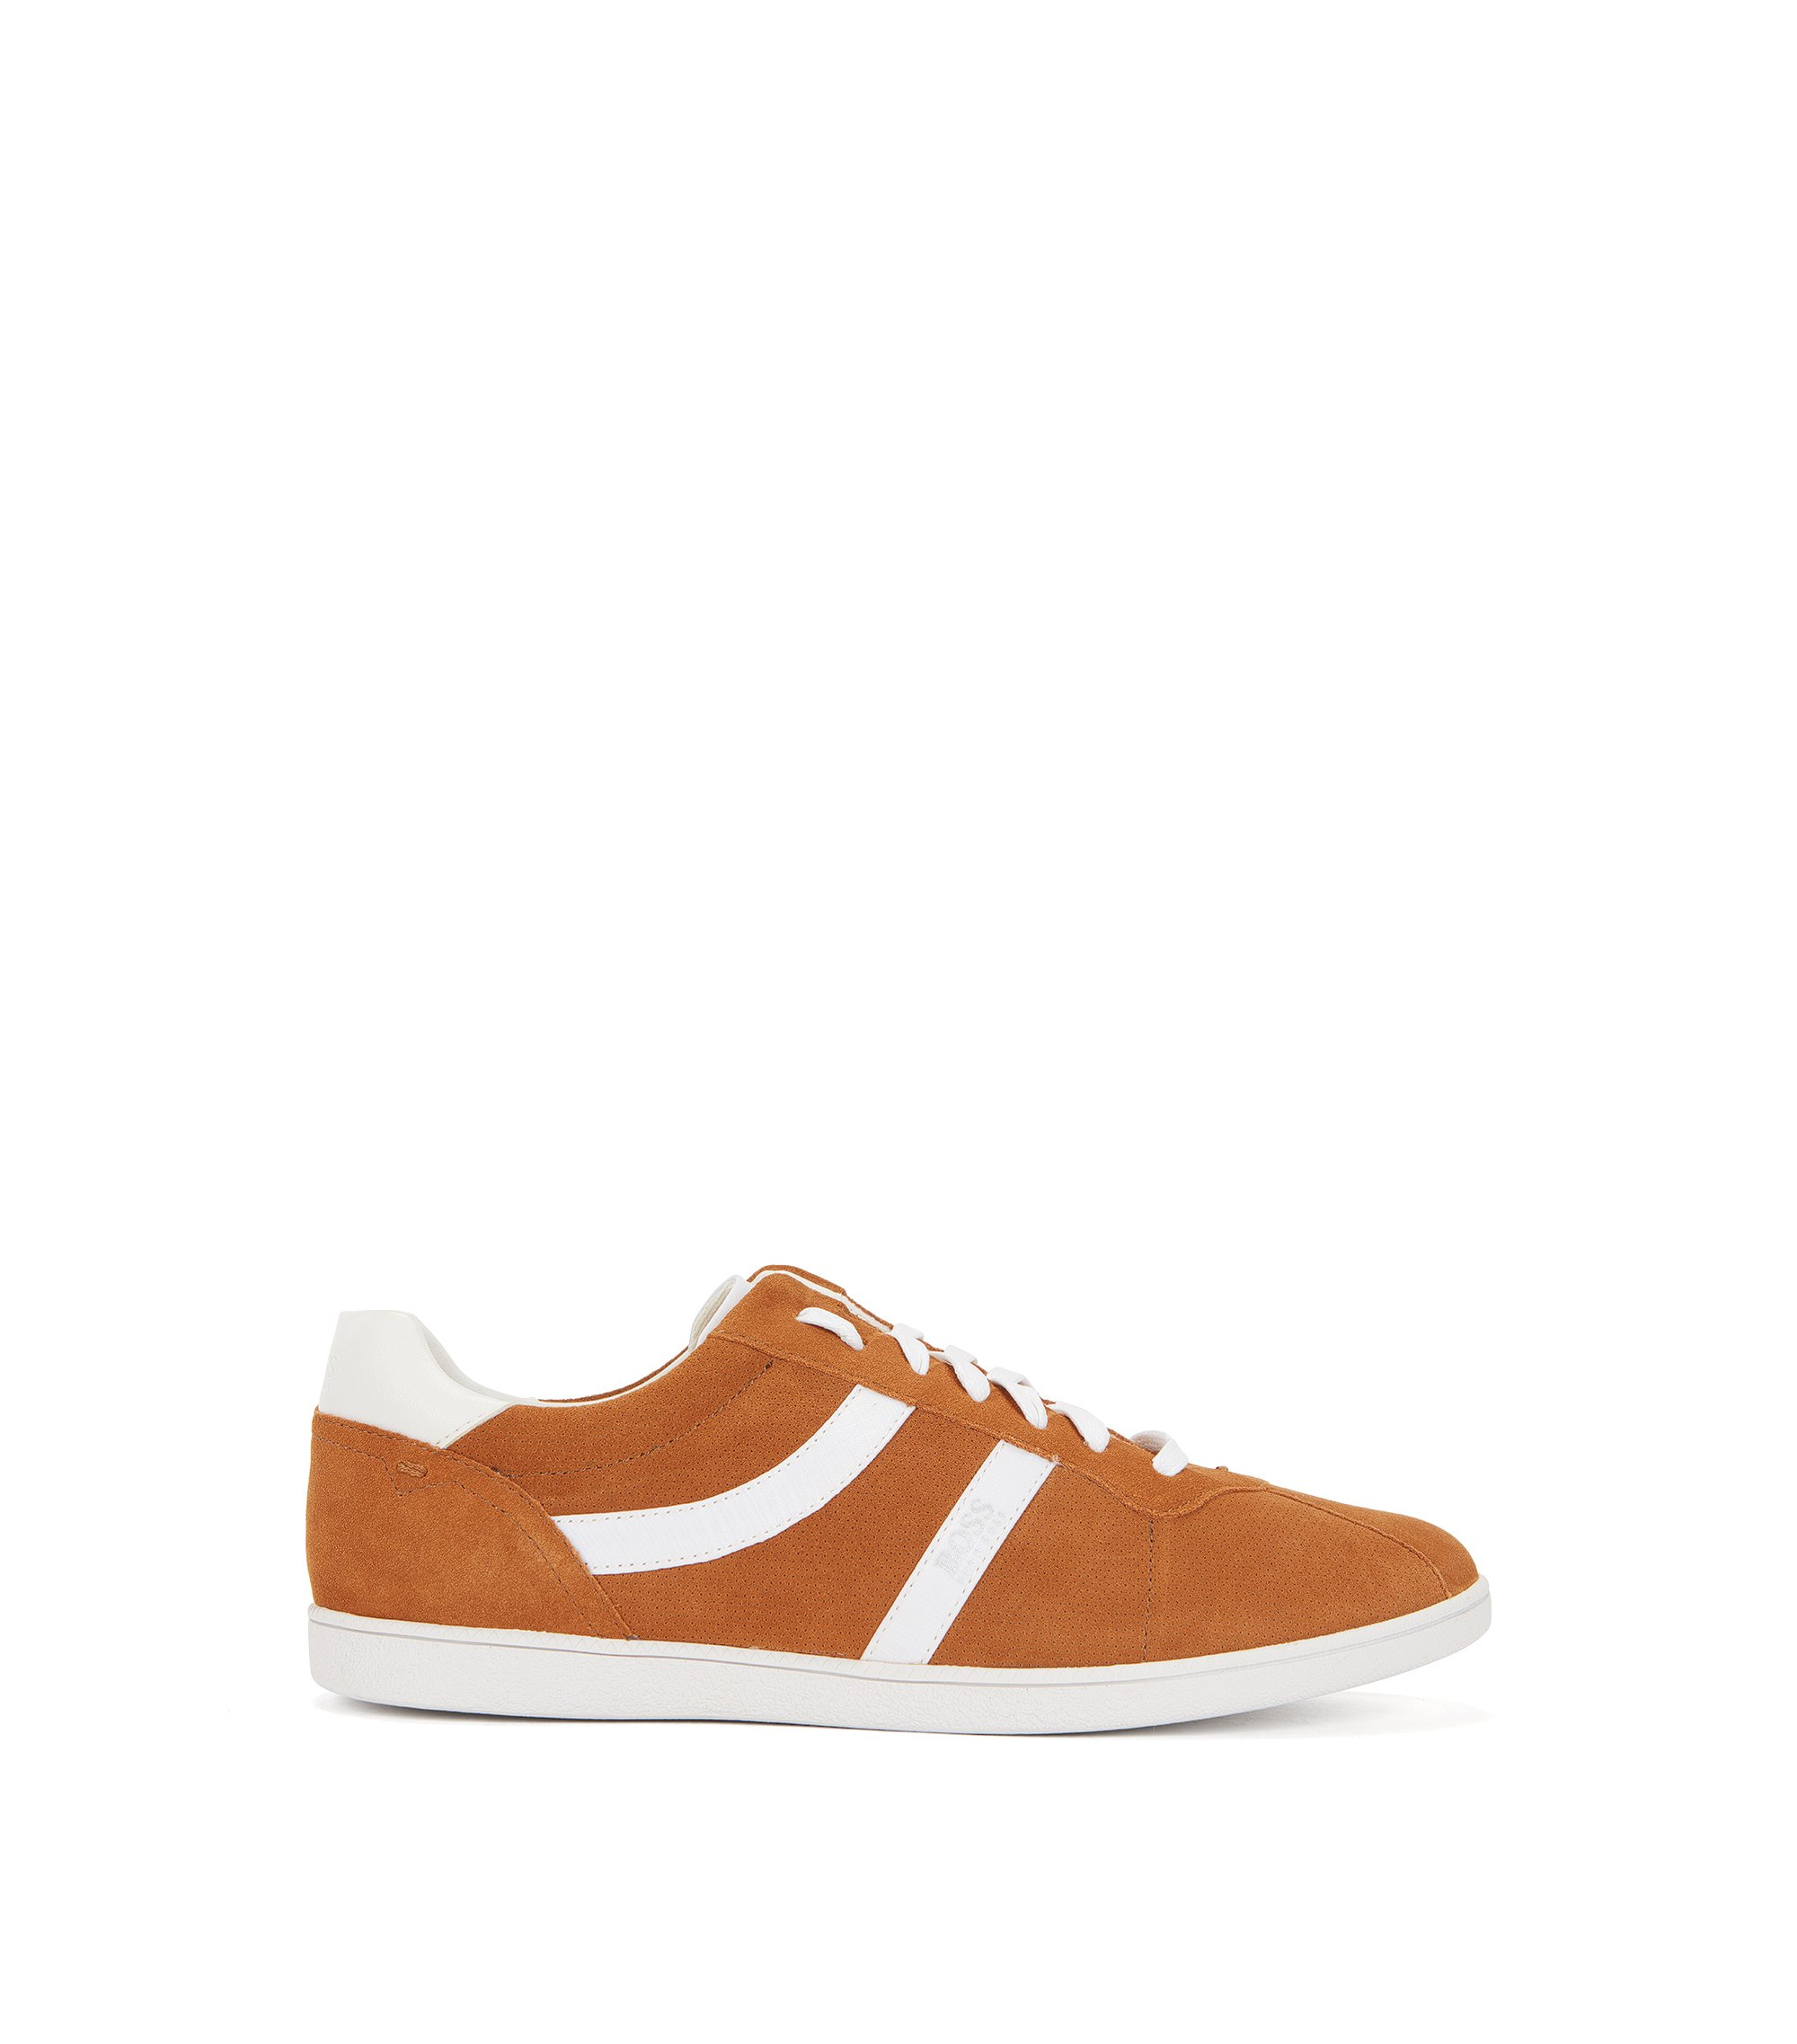 Sneakers low-top in pelle scamosciata liscia e traforata, Marrone